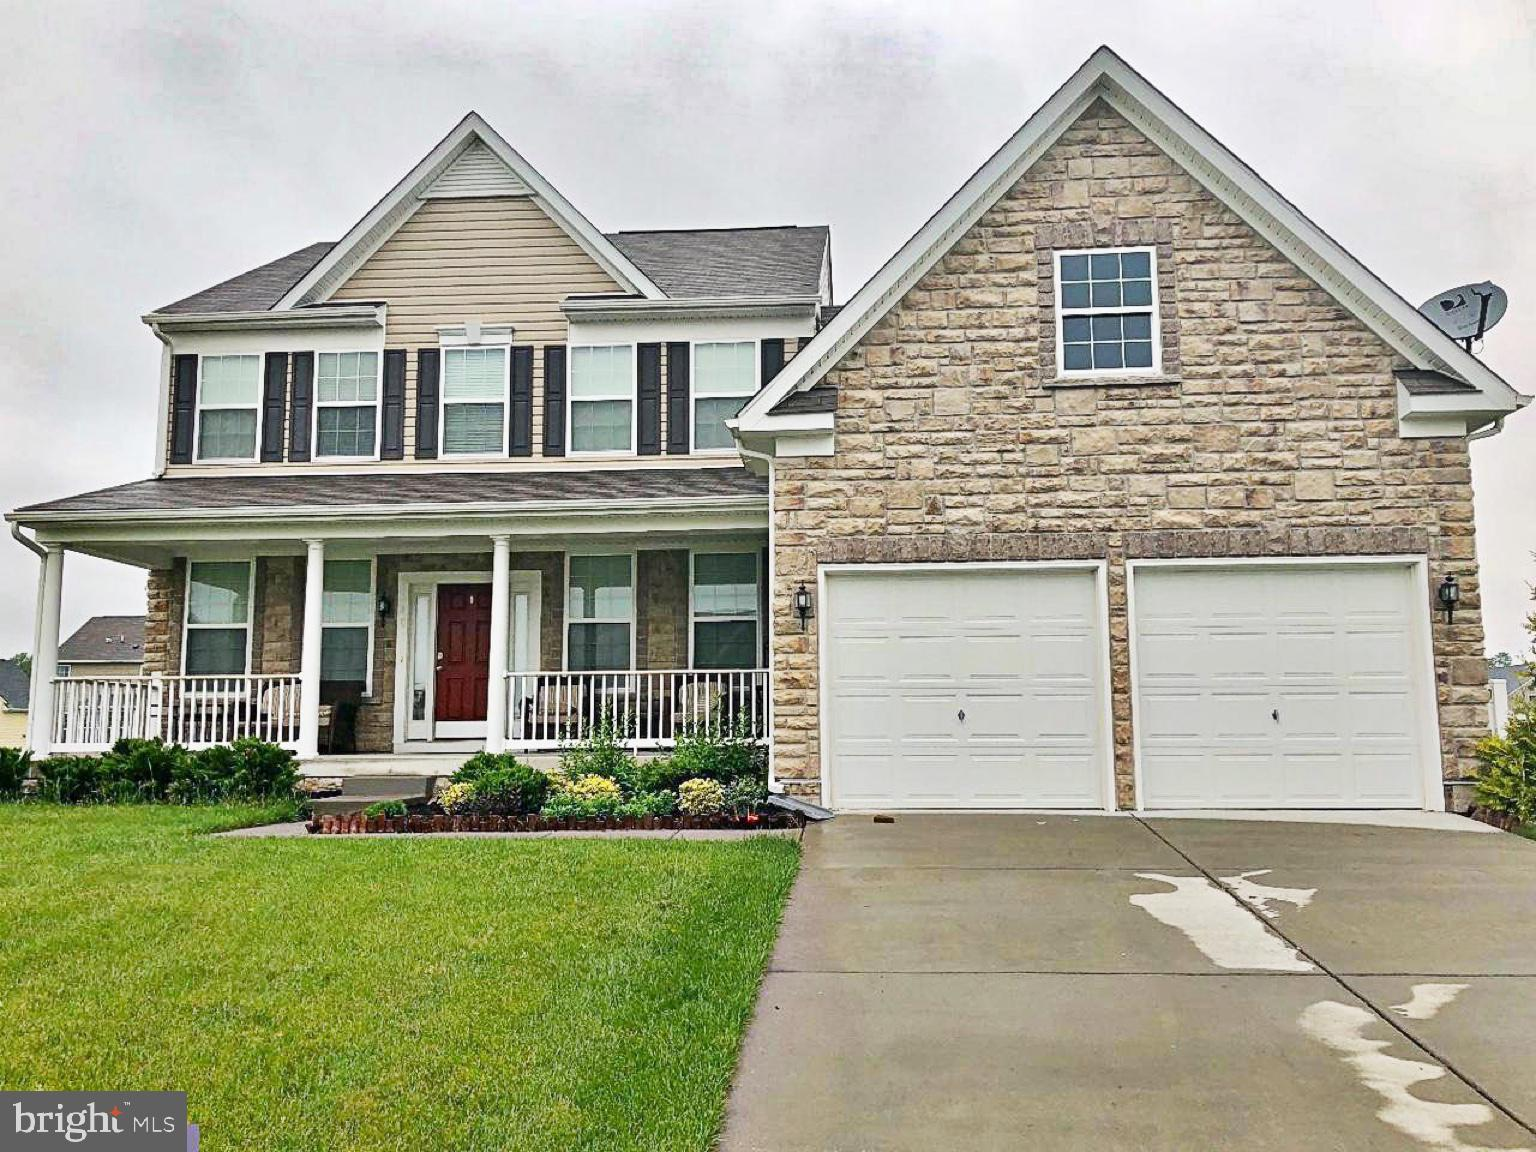 HIGHEST AND BEST OFFERS DUE BY MONDAY, MAY 17TH AT 12 PM.  FIRST FLOOR MASTER!  A rare find in a fantastic school district.  Wonderful 4 bedroom, 2.5 bathroom home in Chestnut Ridge.   Features of this home include granite counters, stainless appliances, soaring ceilings in the family room with gas fireplace,  huge unfinished basement that you can finish to your desire, beautiful back yard patio, and so much more.  Fenced in back yard  and first floor office too!  Make this one yours today!  Showings during the Open House weekend only May 15, 2021 and May 16, 2021 from 12-4 pm.